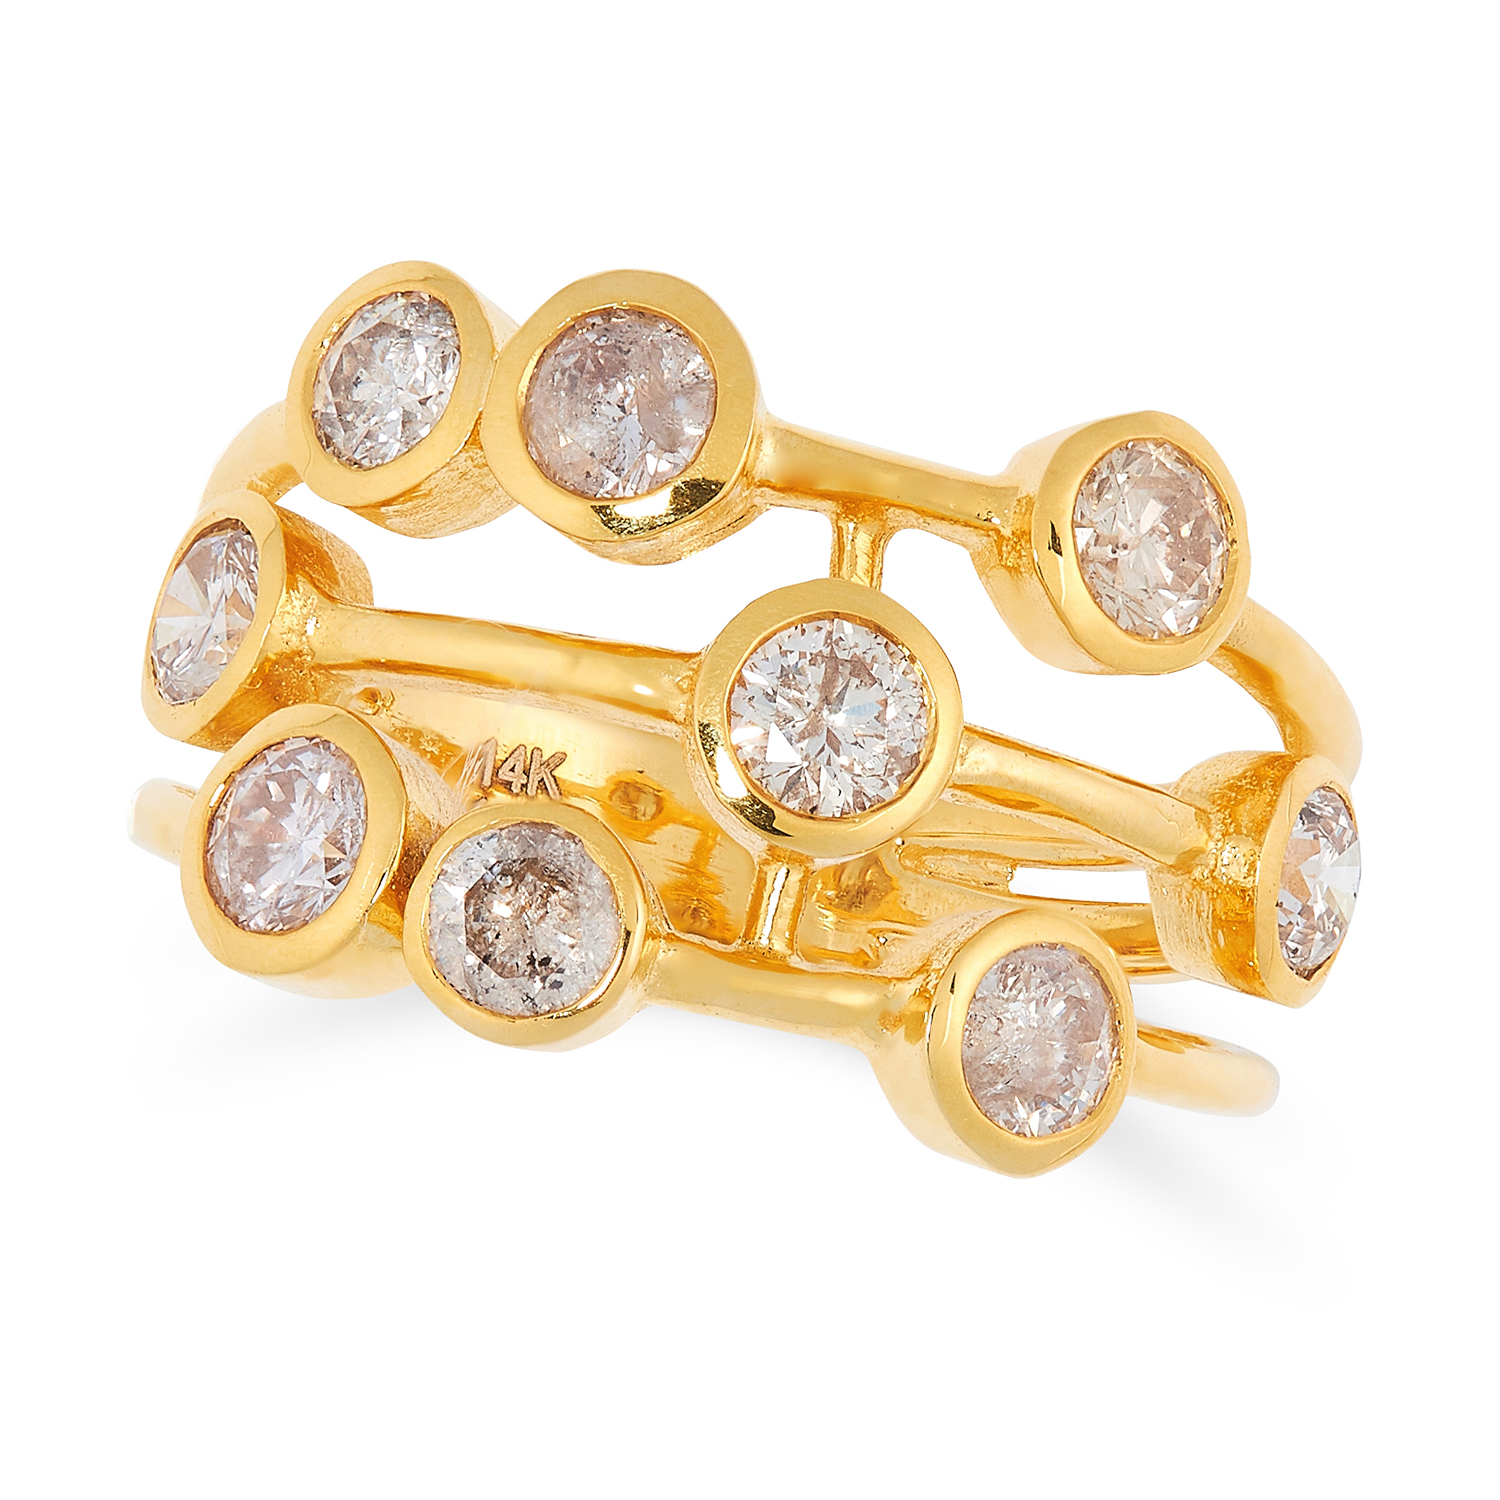 Los 19 - A DIAMOND DRESS RING in the manner of Boodle's raindance design, the open framework set with round